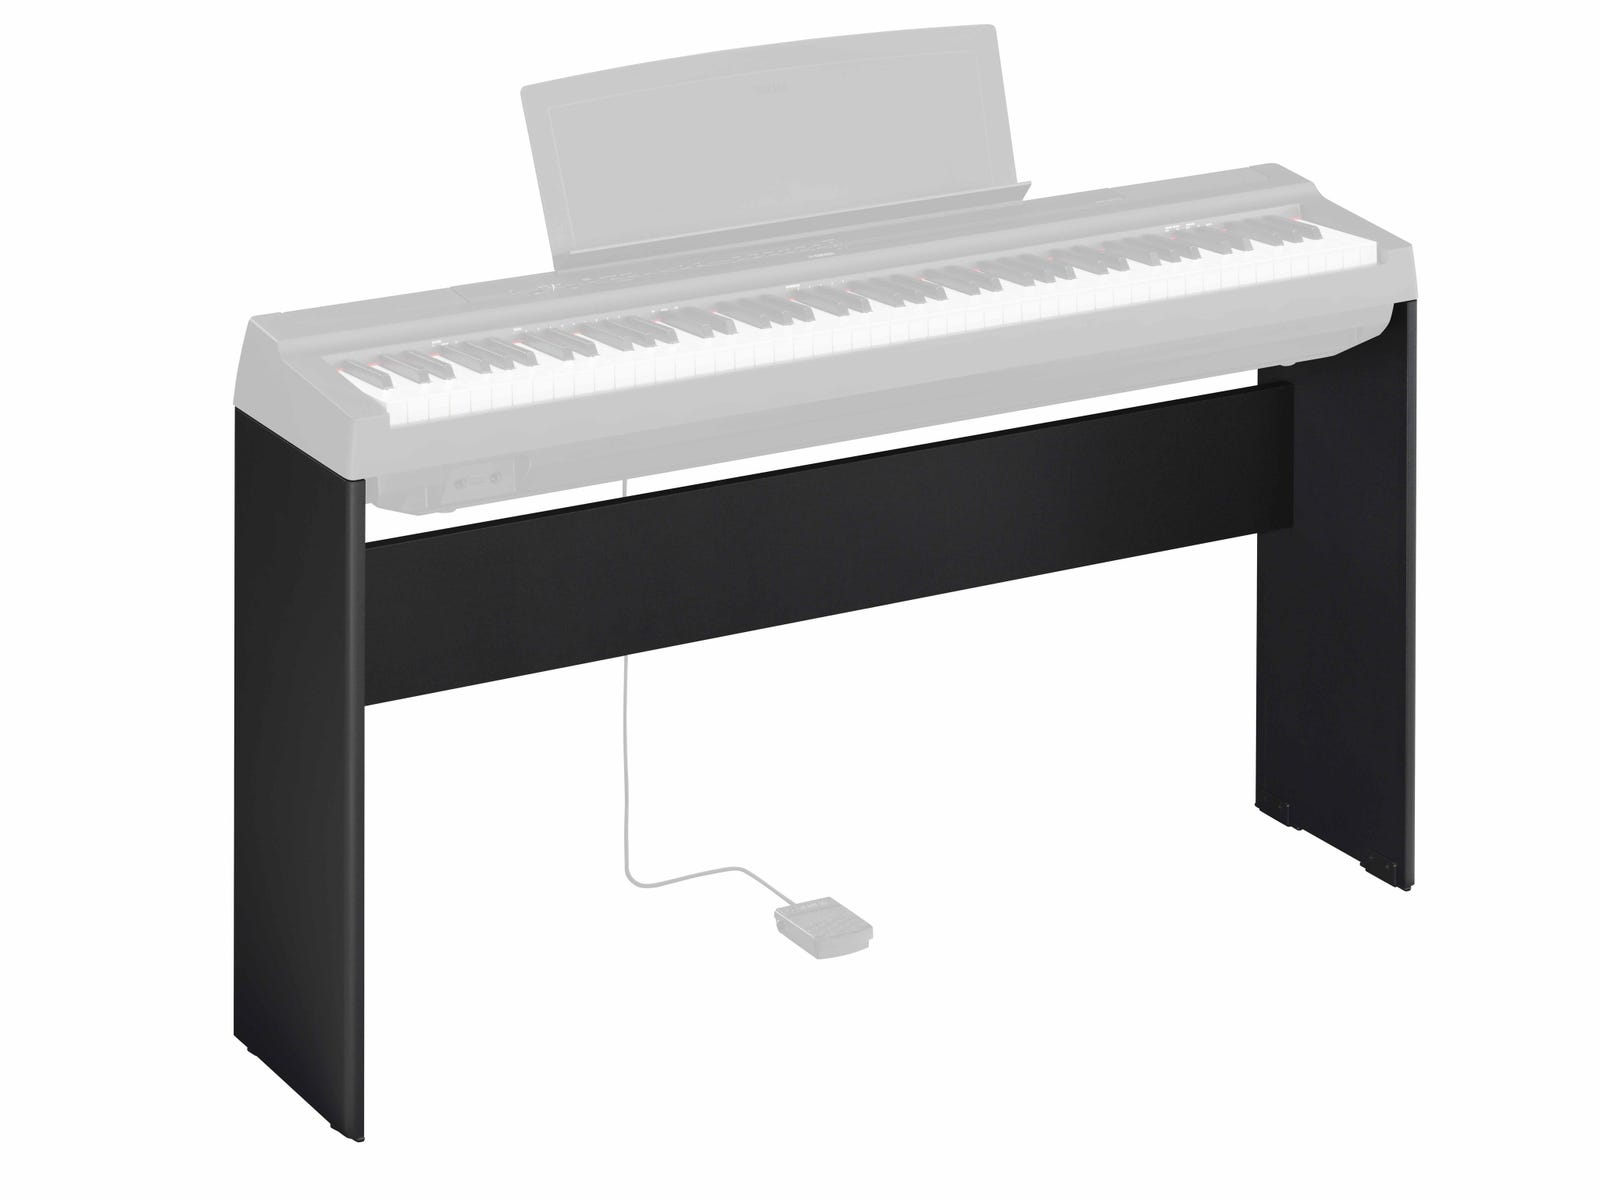 Yamaha L125B Timber stand for Black P-125 Portable Pianos